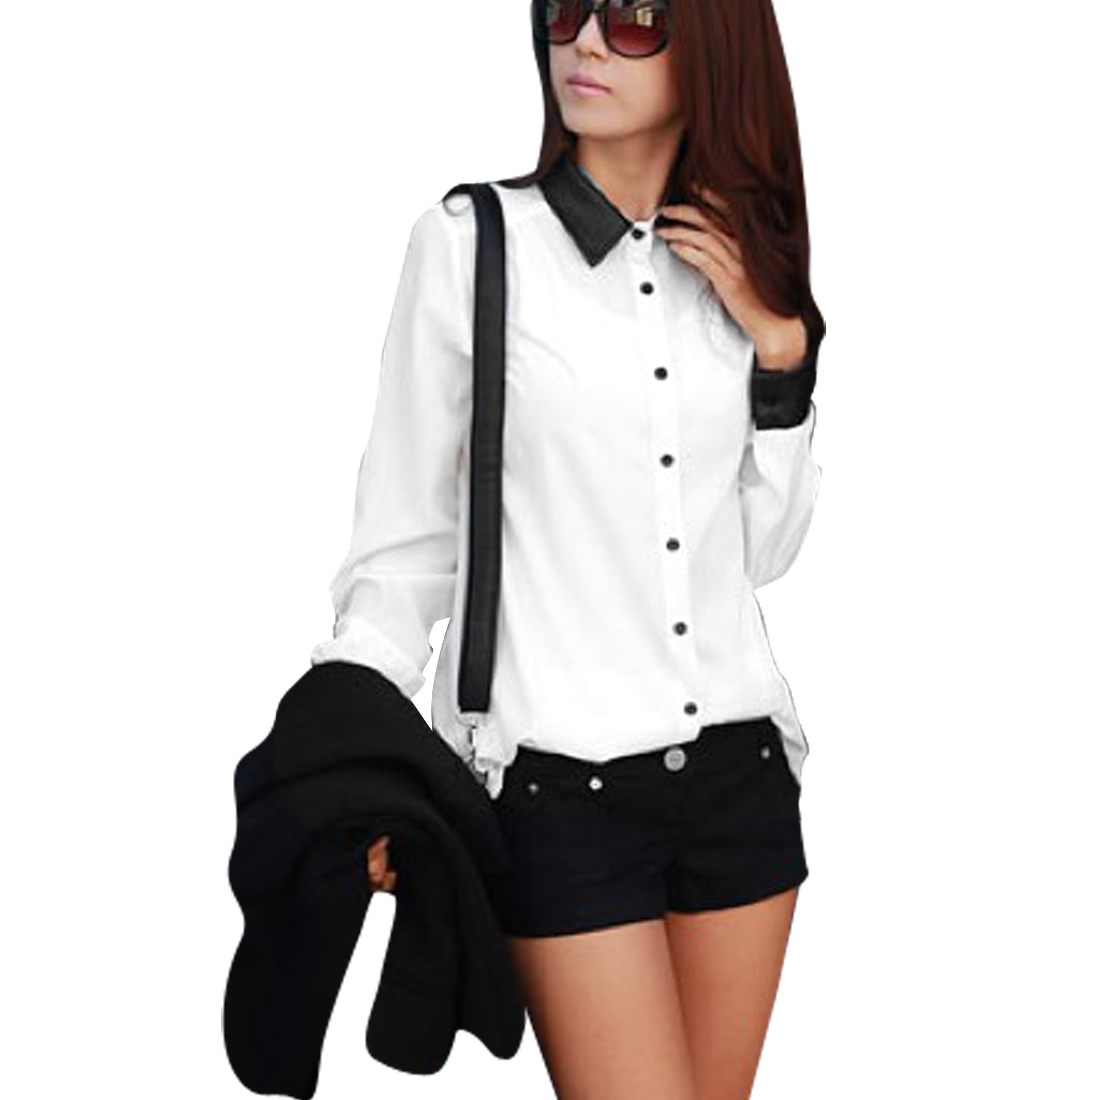 Autumn Button Front Splice Design White Semi-sheer Shirt XS For Lady